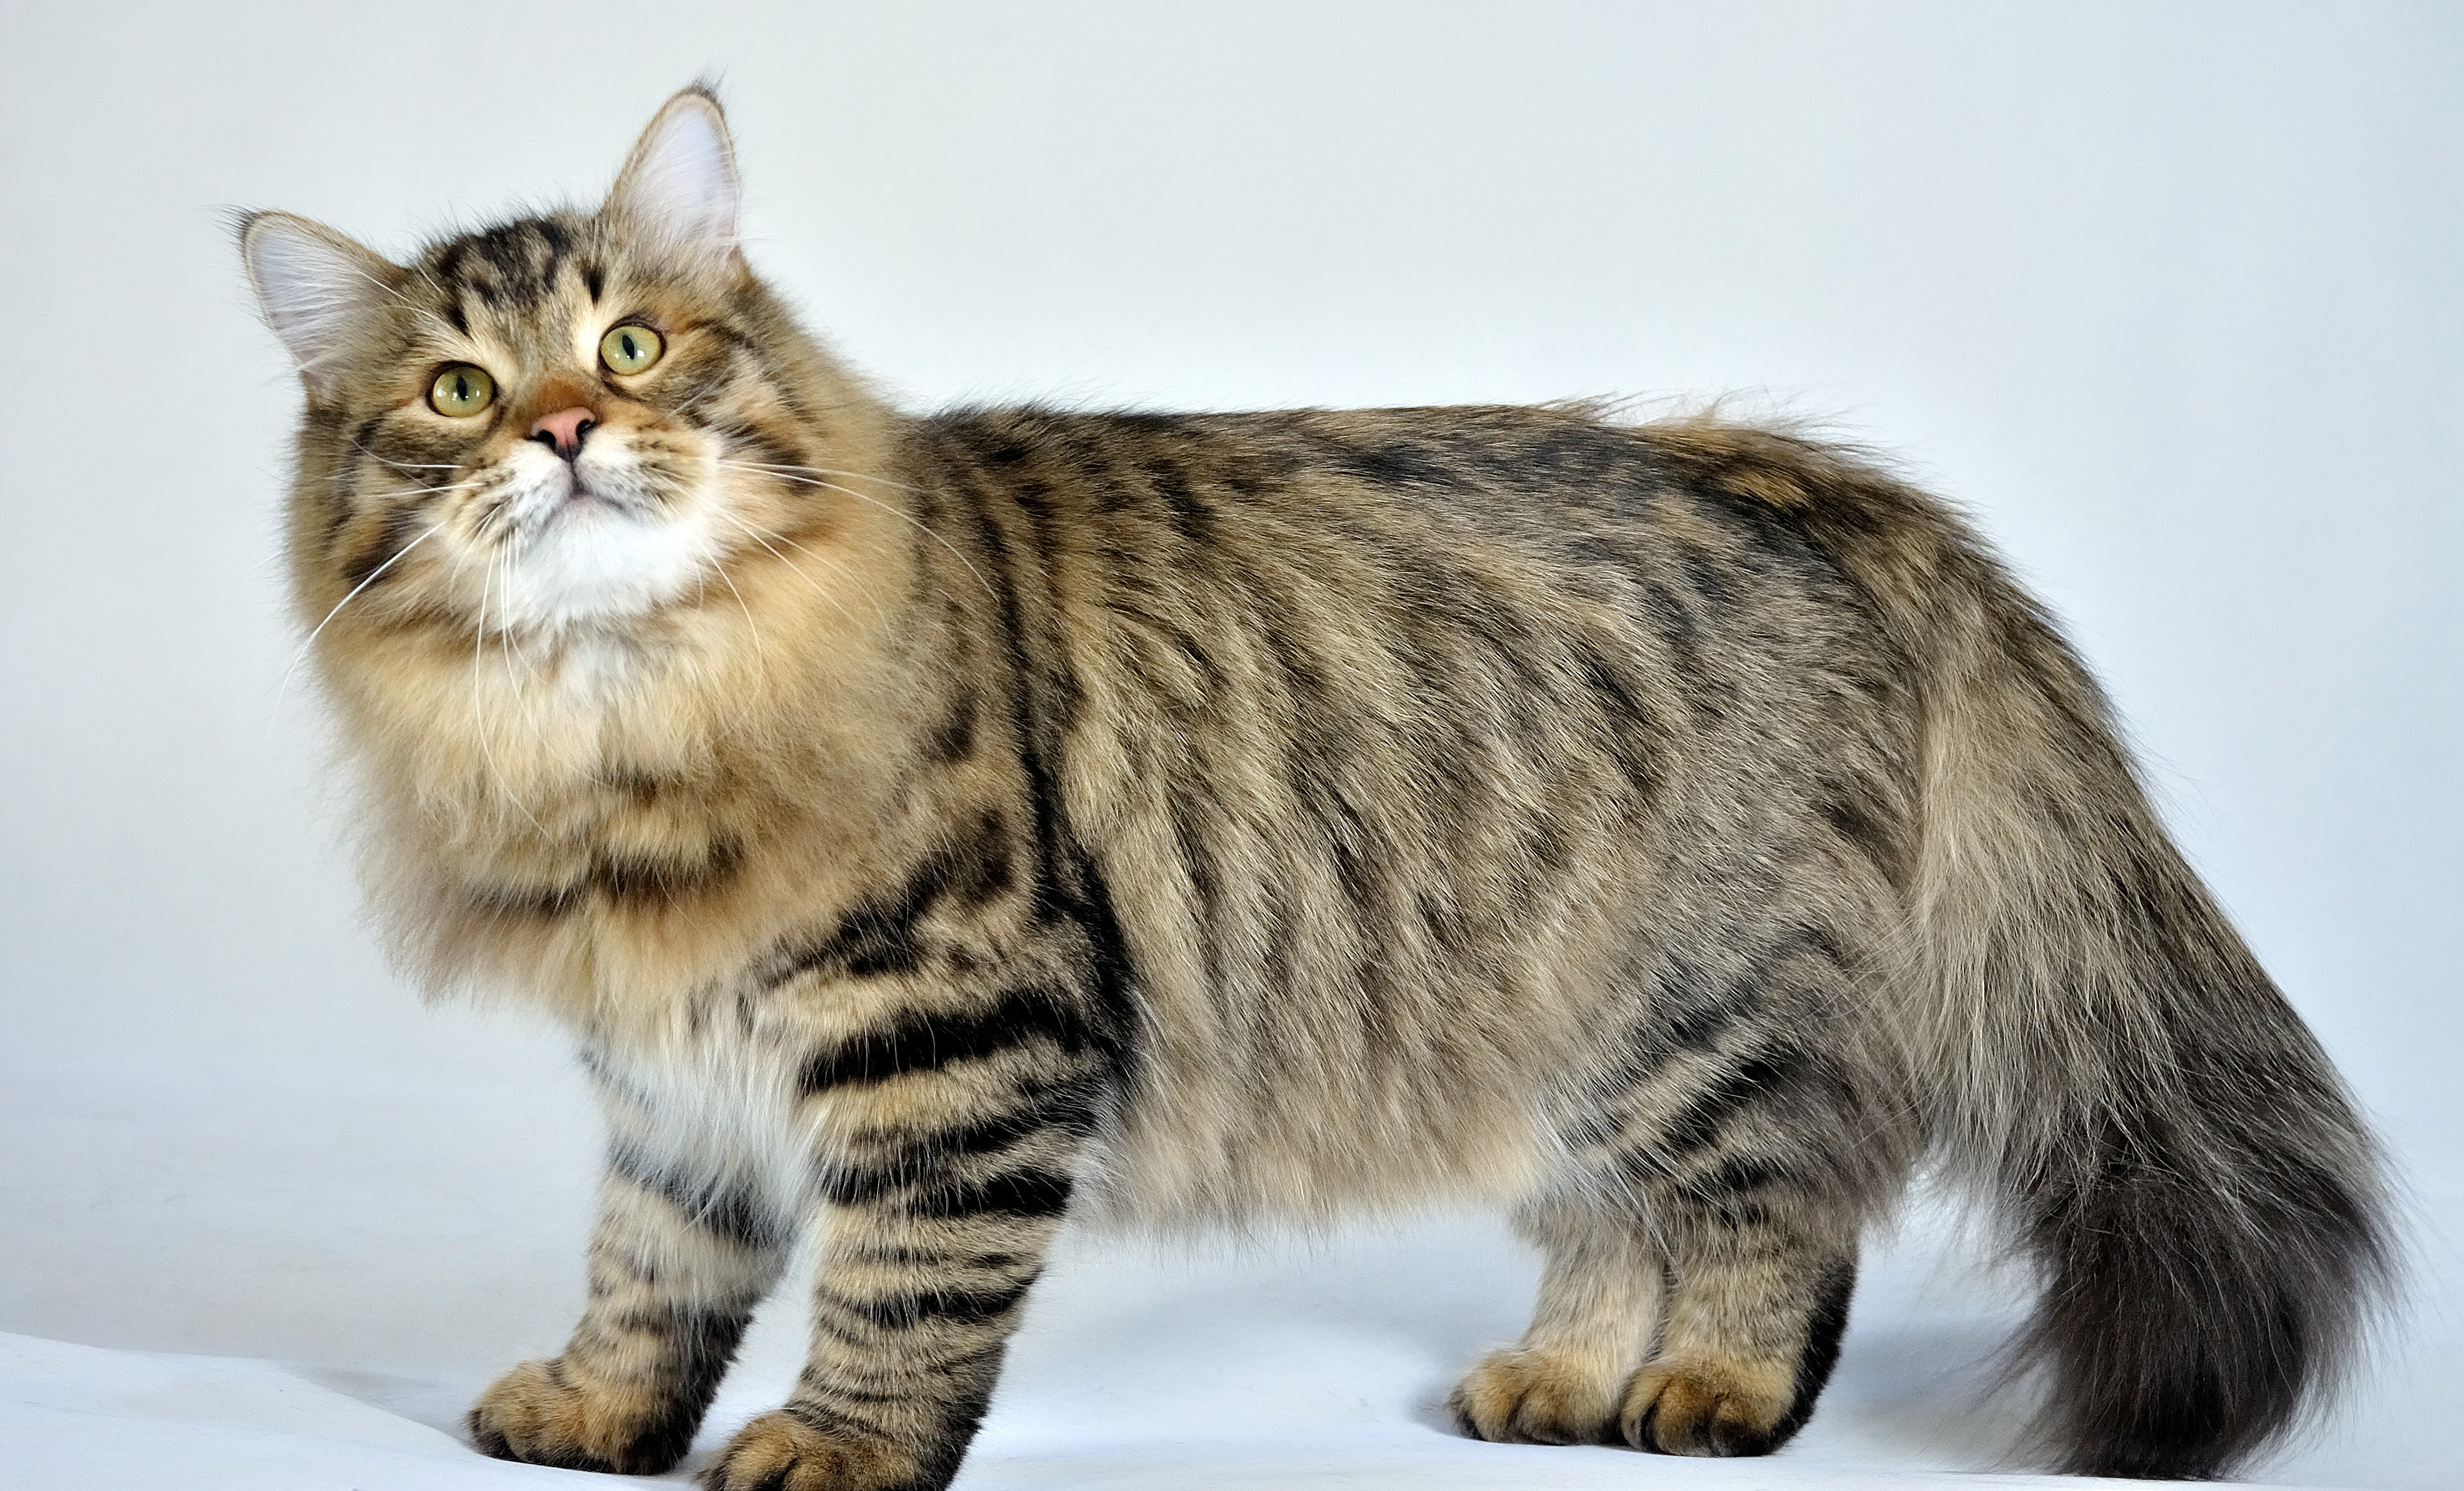 animals___cats_siberian_cat_posing_on_a_white_background_045072_